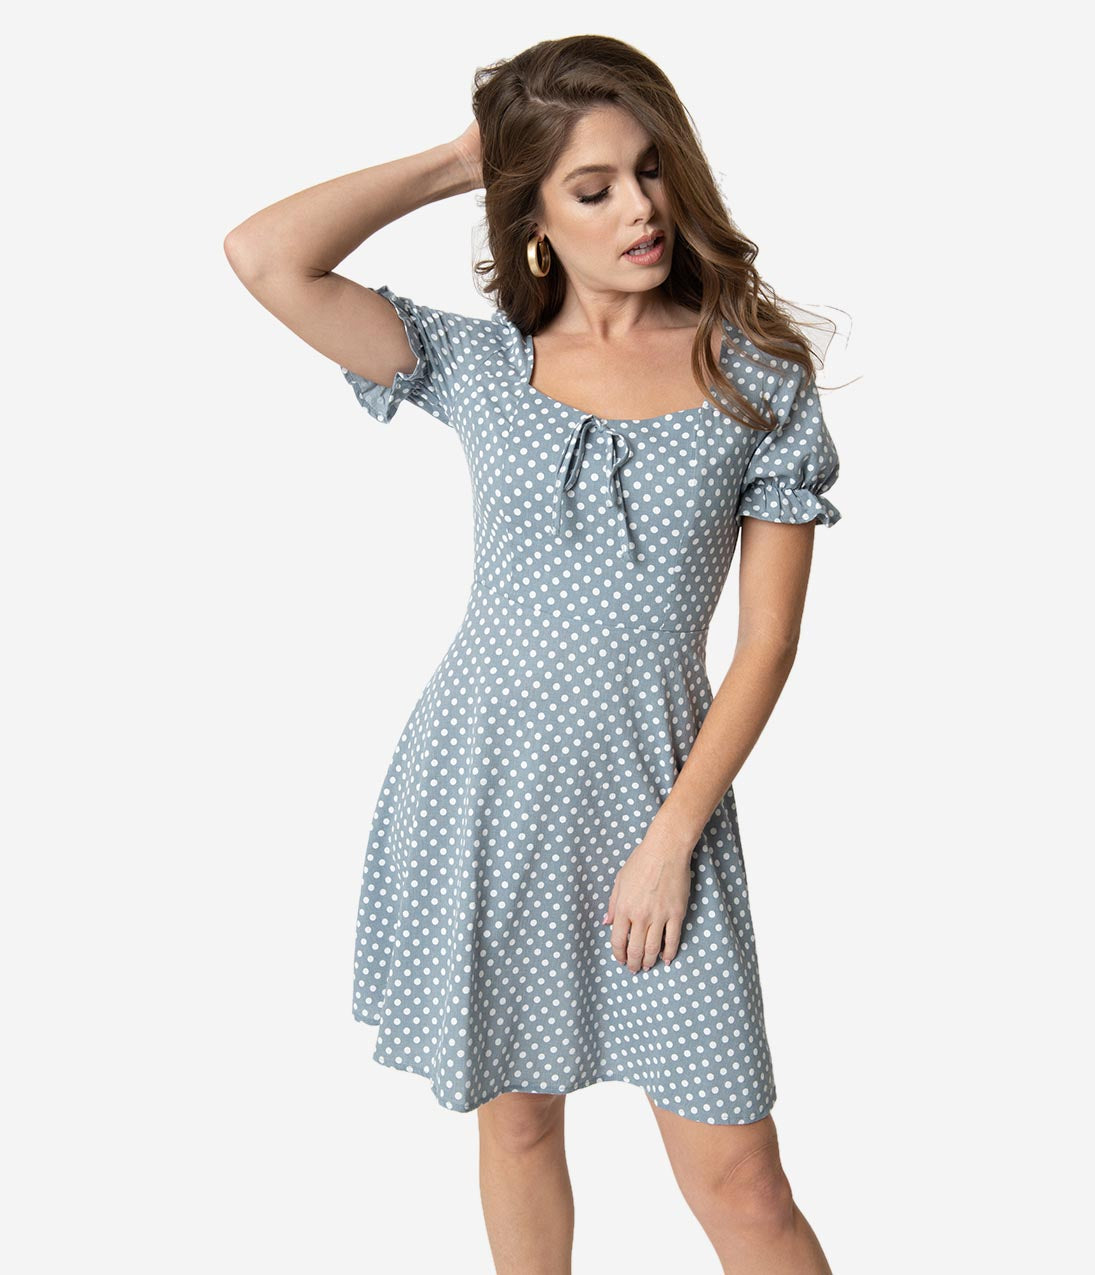 52ccc50e49a Retro Style Yellow   White Polka Dot Half Sleeve Fit   Flare Dress ...